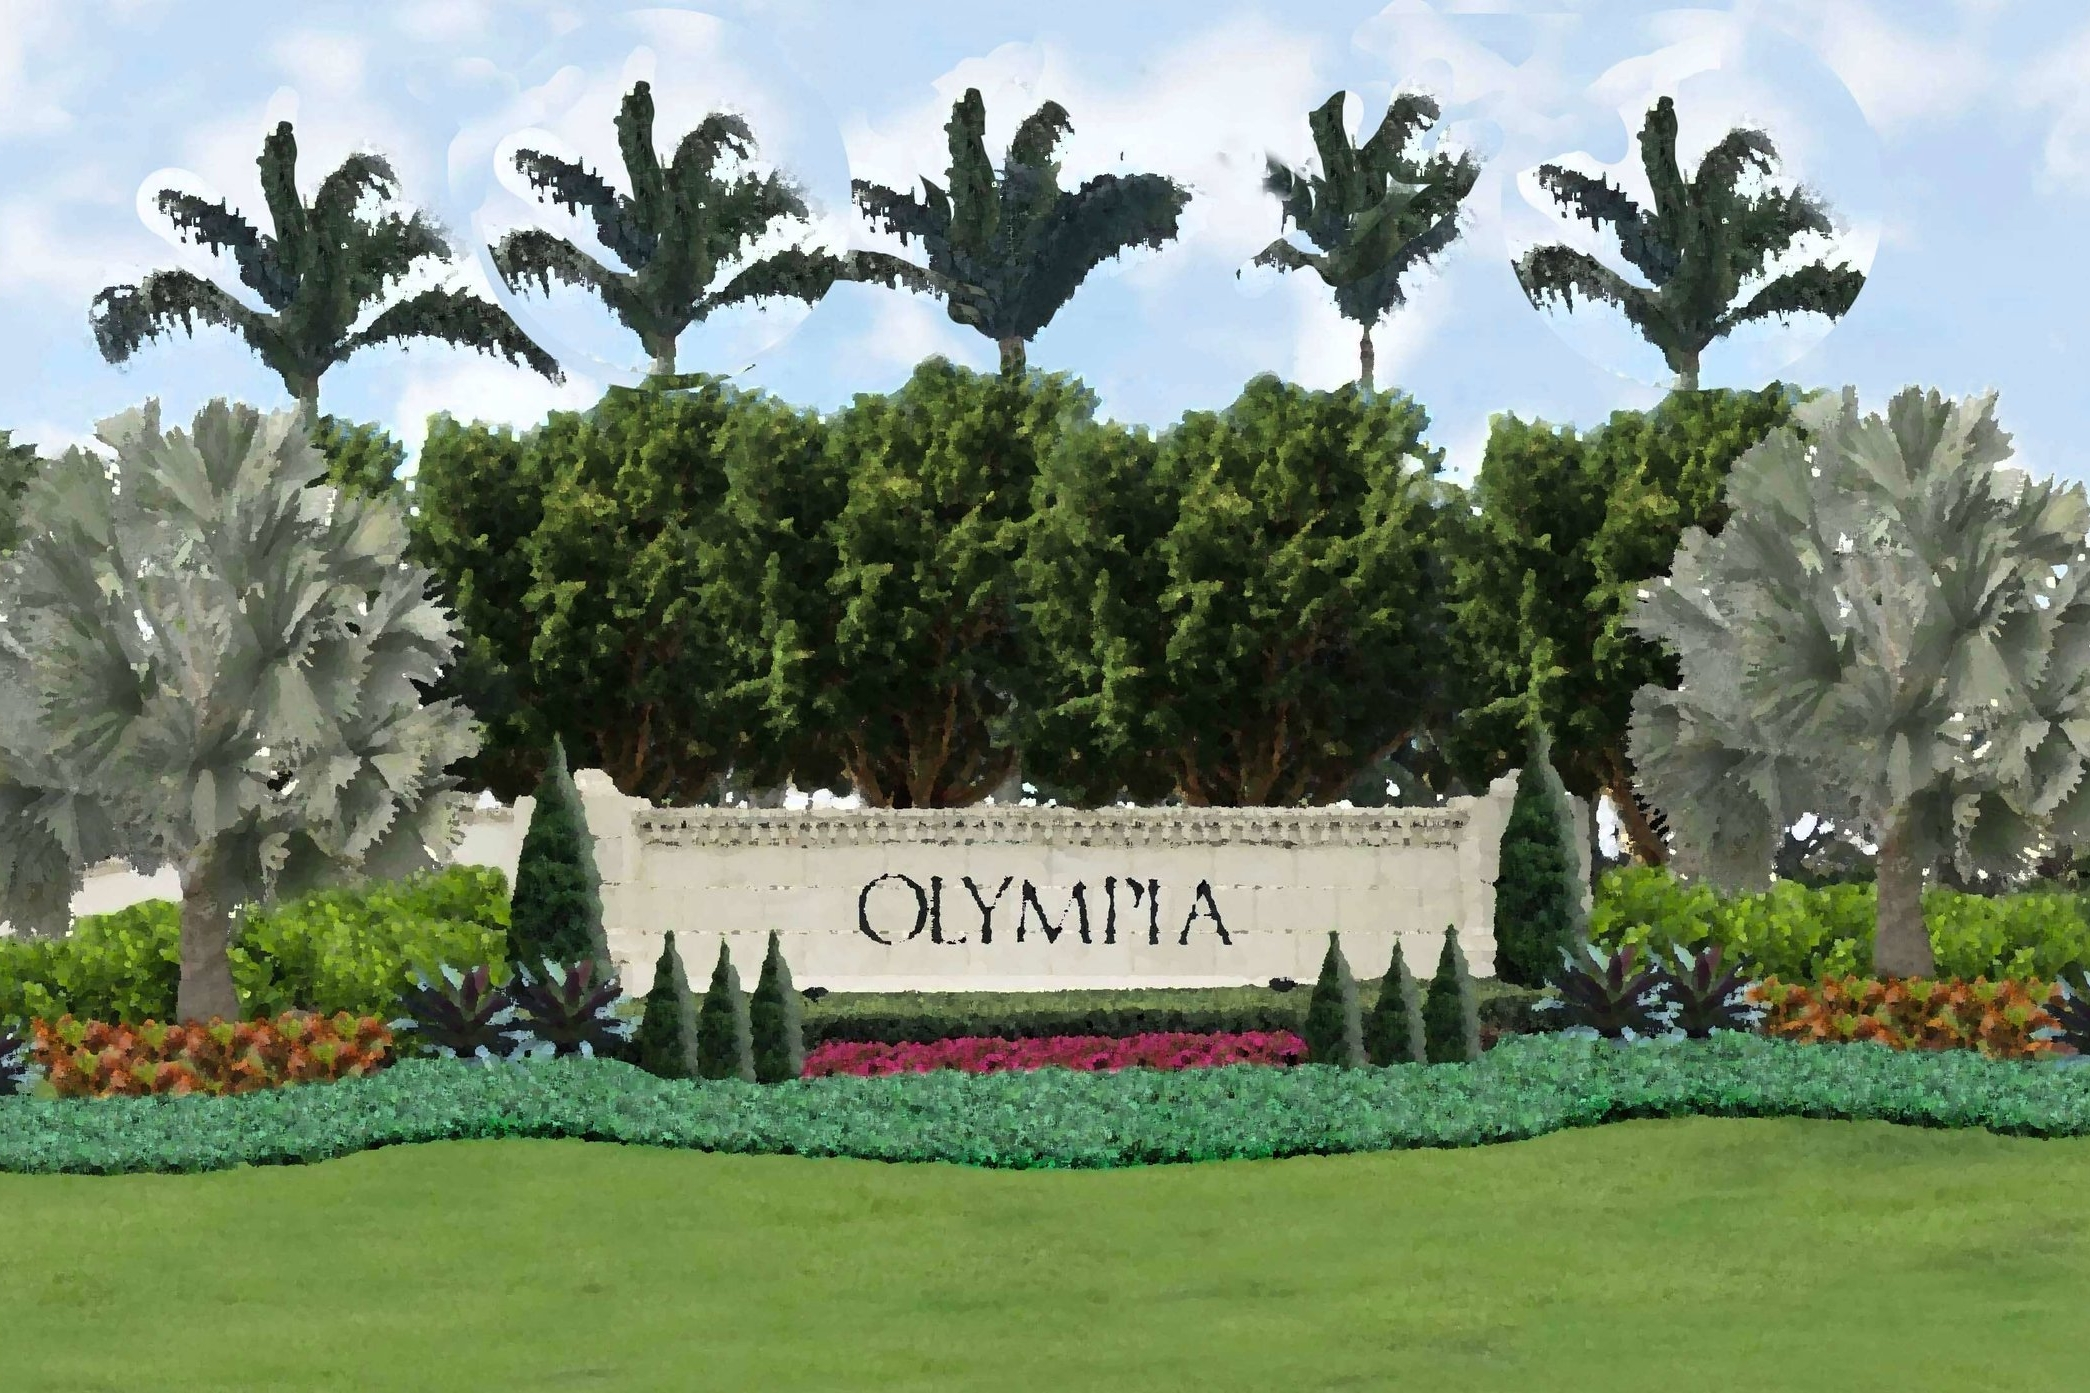 - Olympia, WellingtonInsite Studio is working with the exclusive resort-style community, Olympia to restore and redevelop the landscaping throughout the community damaged by Hurricane Irma in August, 2017.